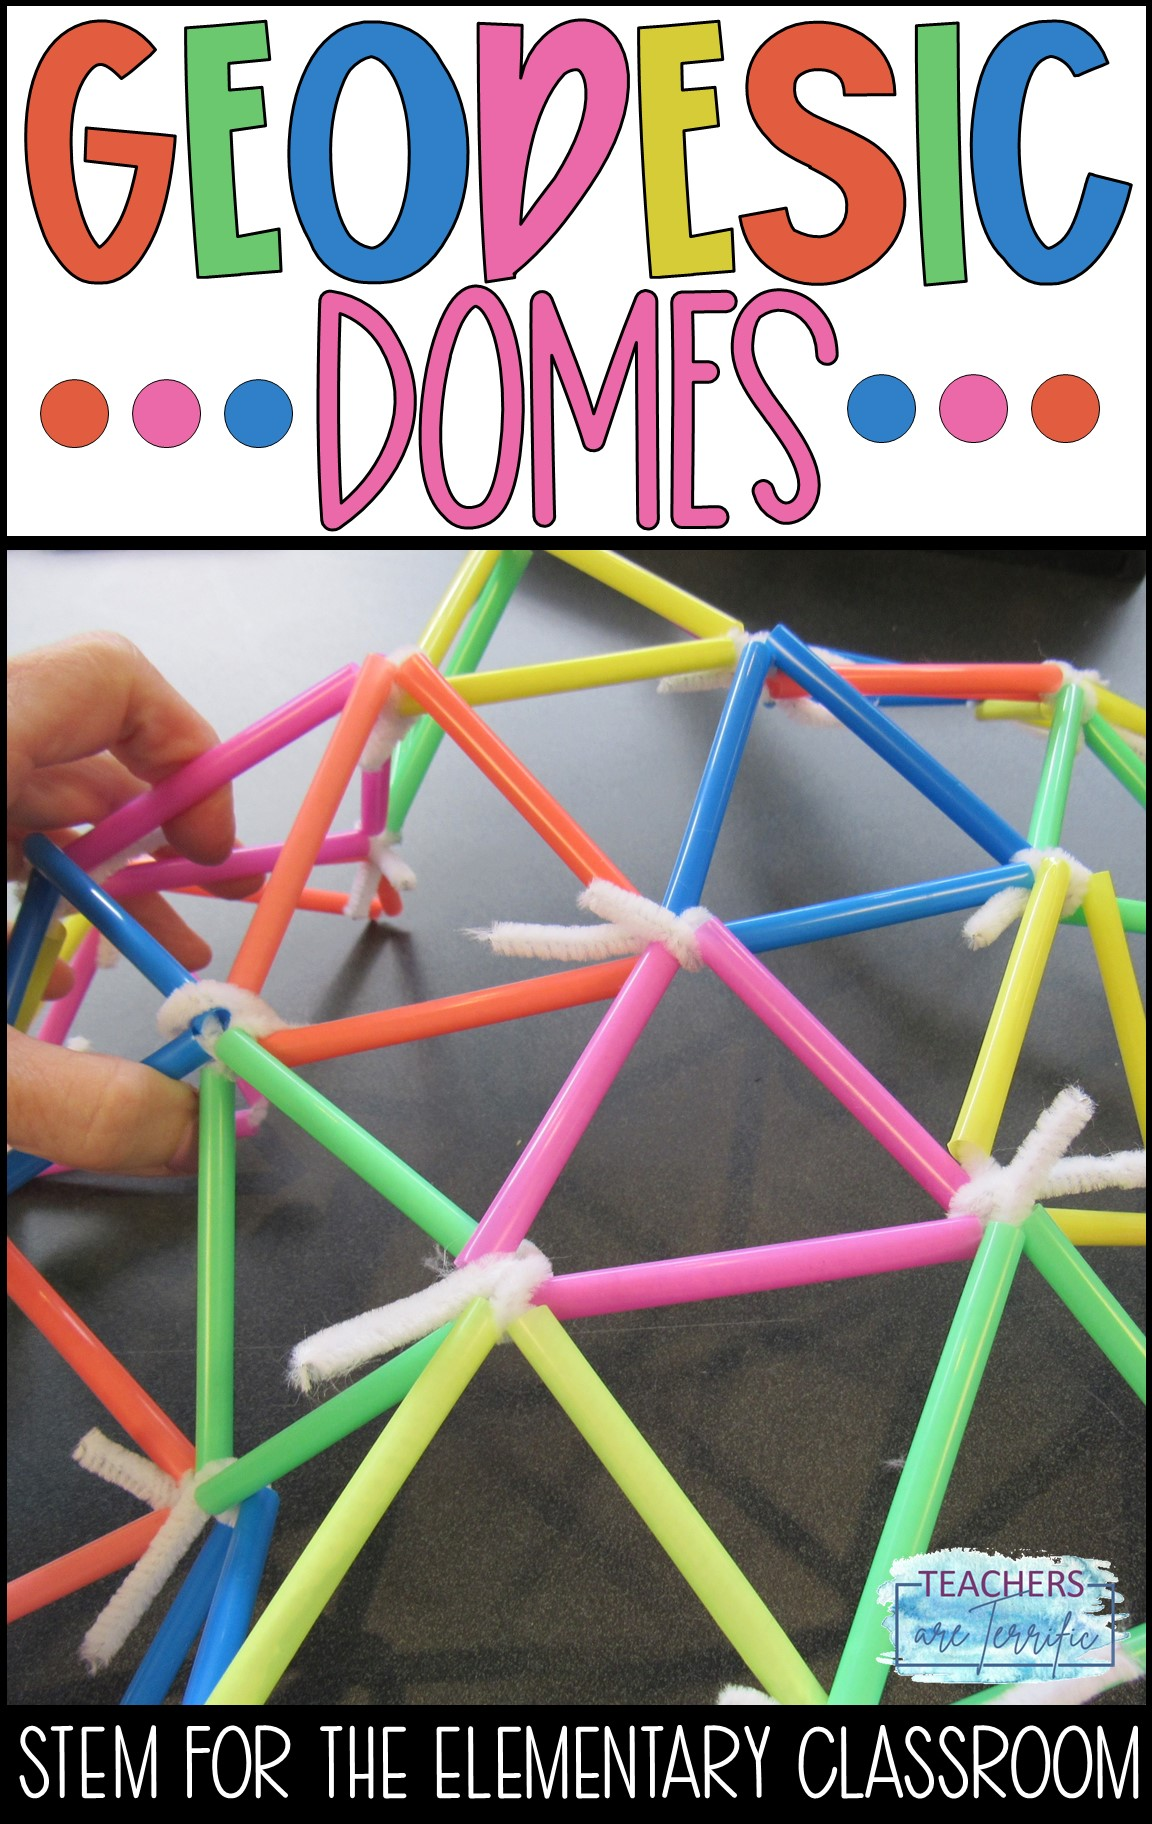 STEM Challenge for elementary students- students use straw pieces to make geodesic domes. This is a fabulous geometric puzzle to solve.